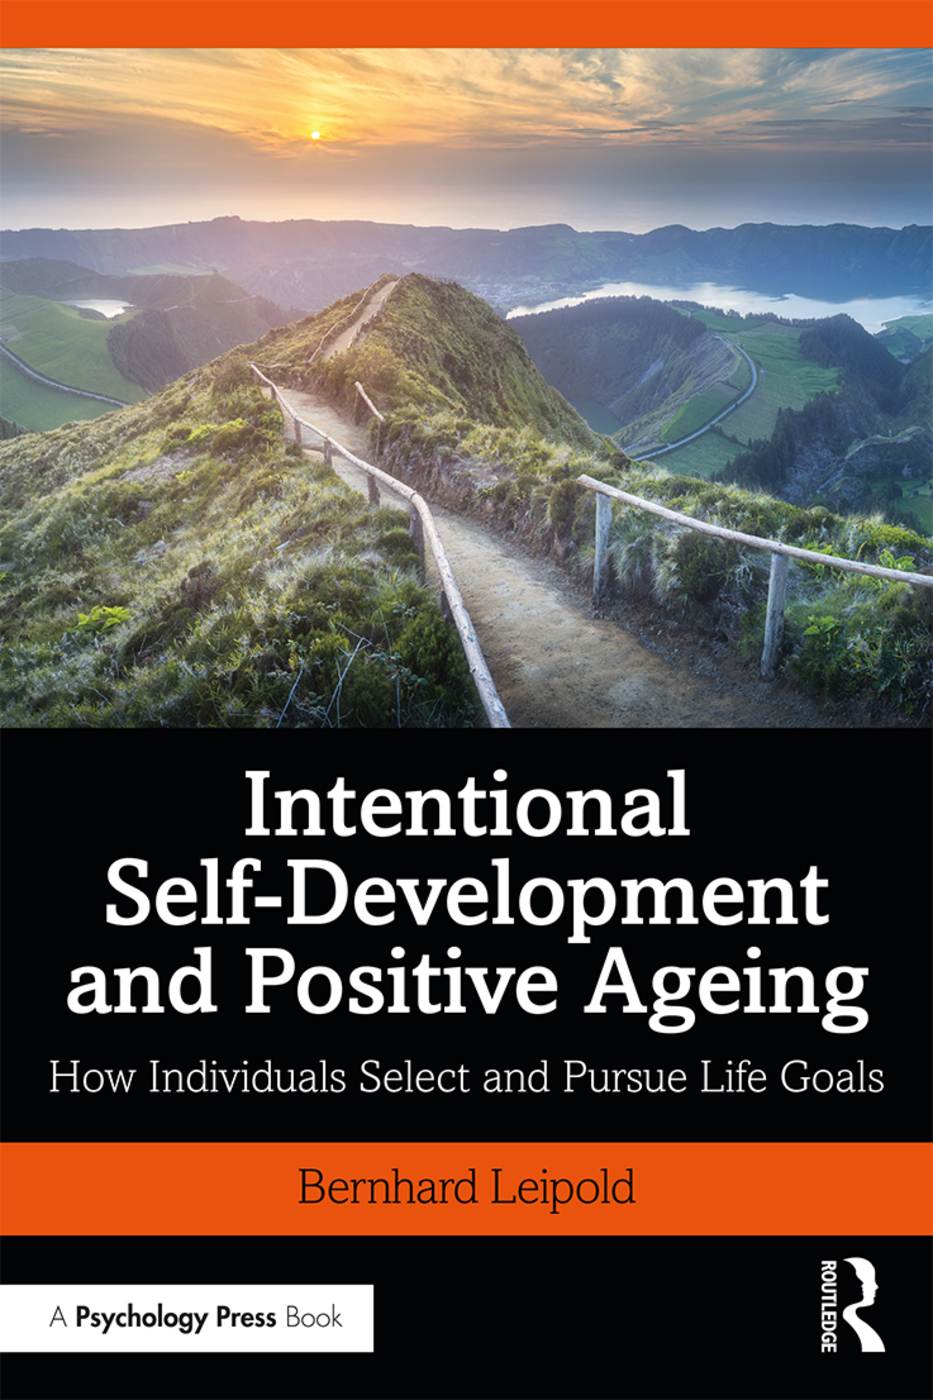 Intentional Self-Development and Positive Ageing: How Individuals Select and Pursue Life Goals book cover